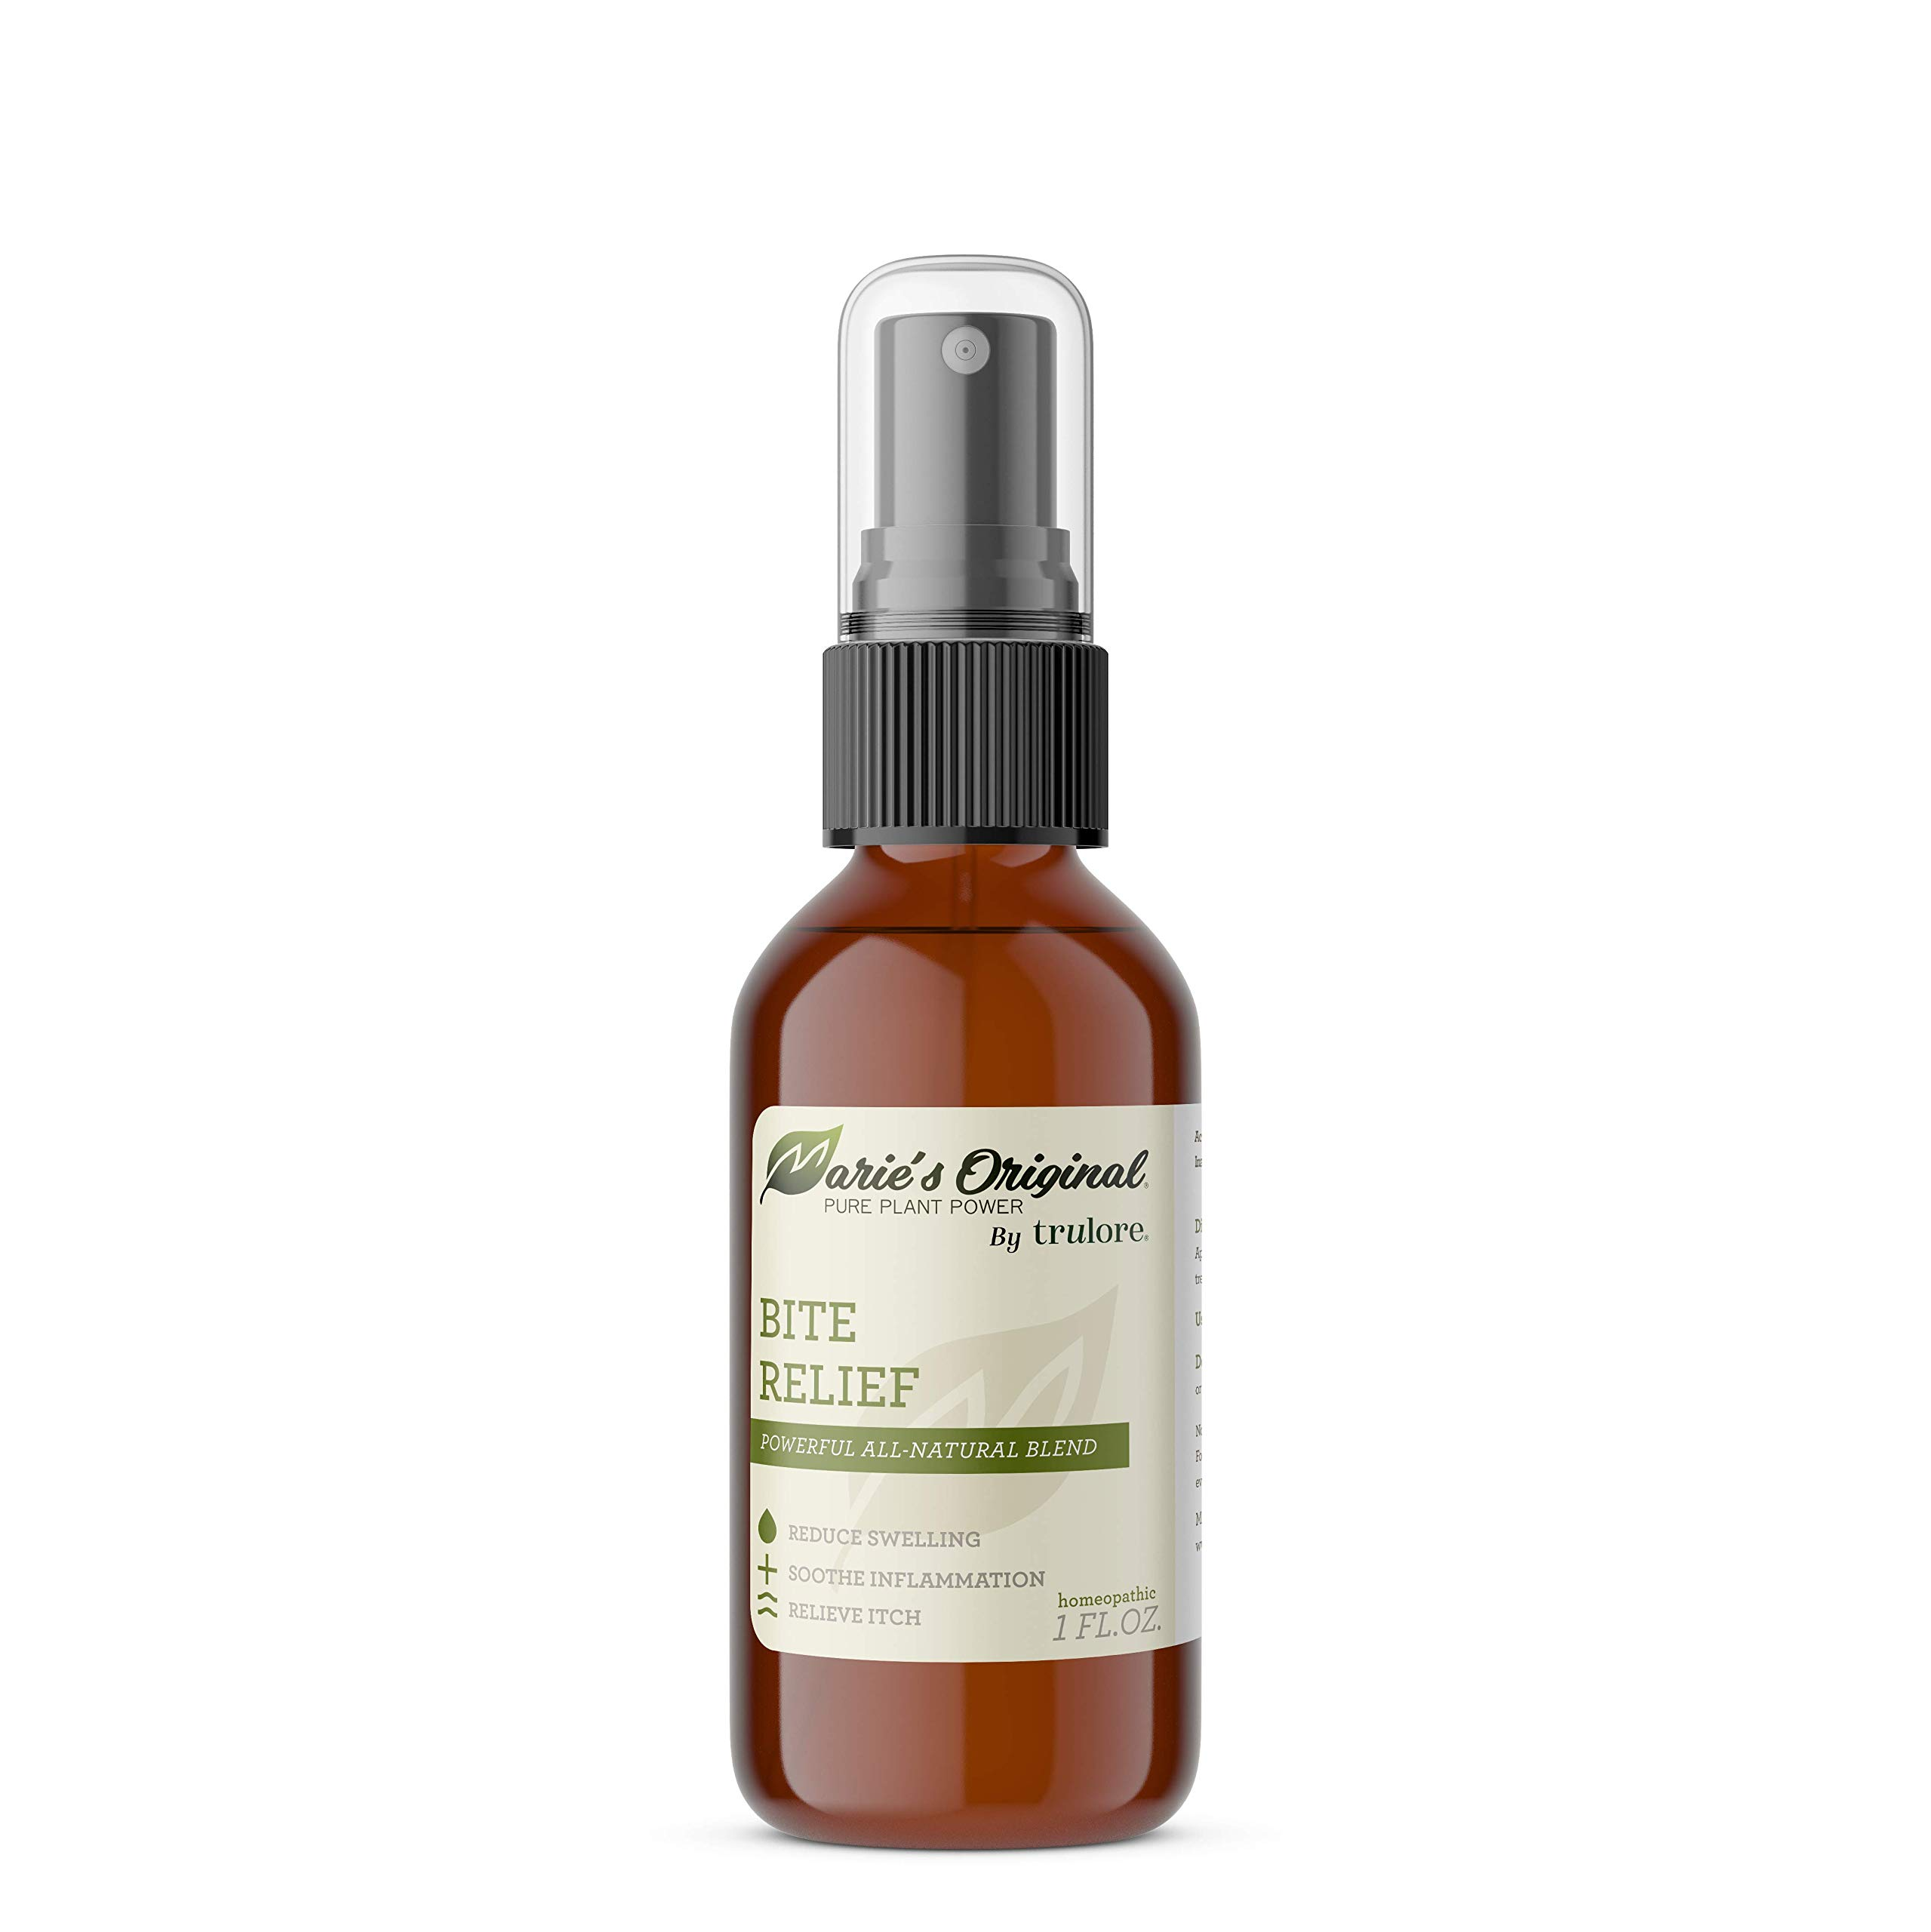 Marie's Original Bug Bite Itch Relief Spray - All Natural Insect Bite Relief. Relieves Itching, Swelling, and Irritation. After Mosquito Bite Relief, Bee Sting